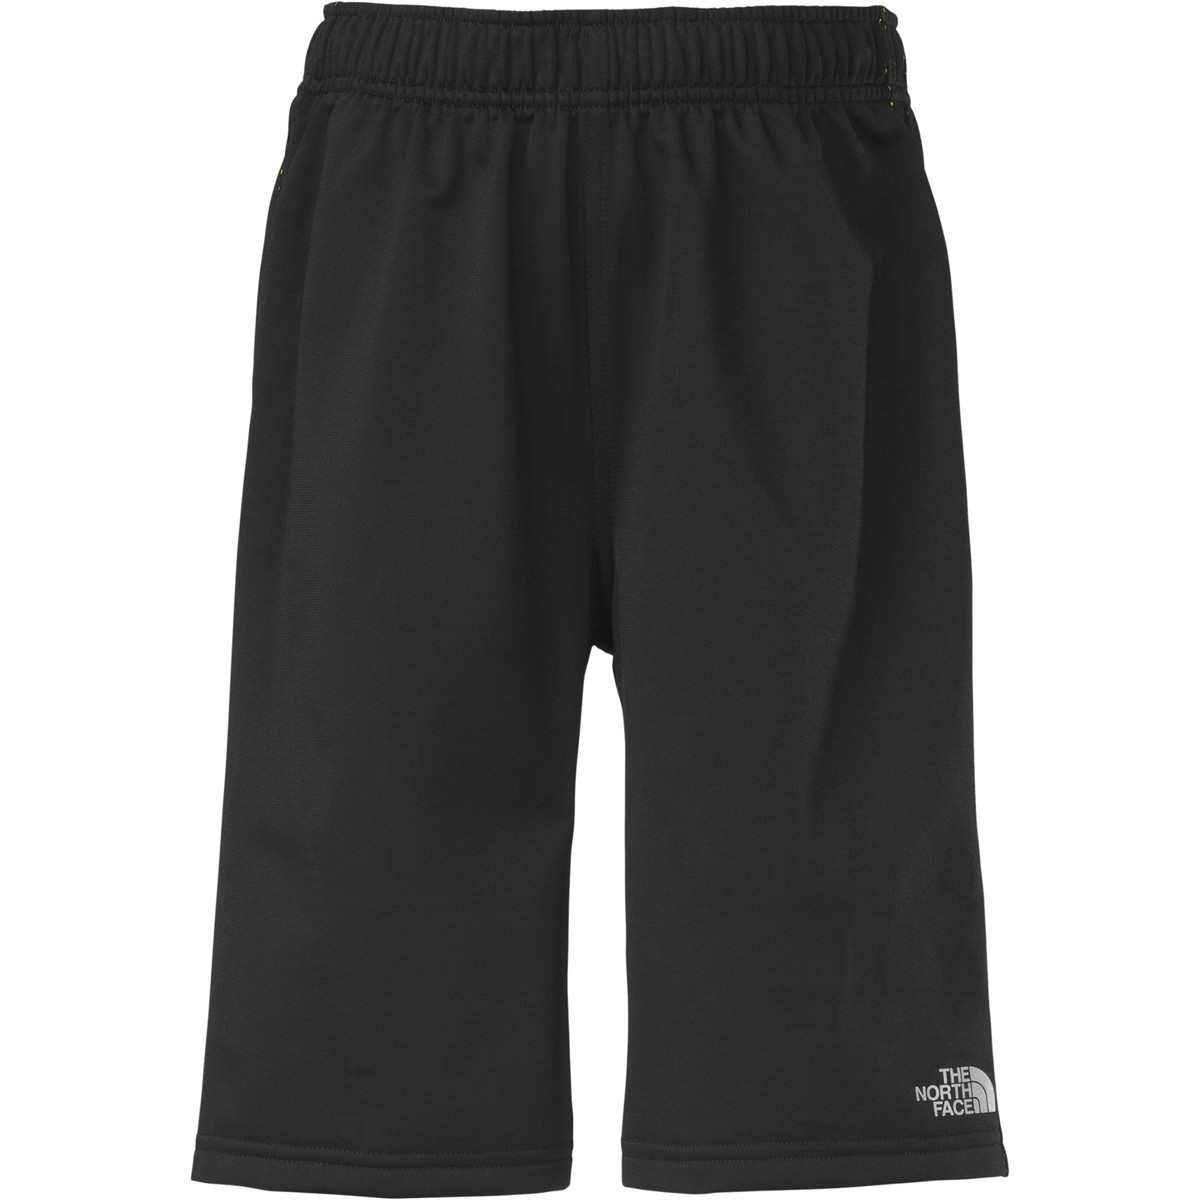 The North Face NFP Shorts